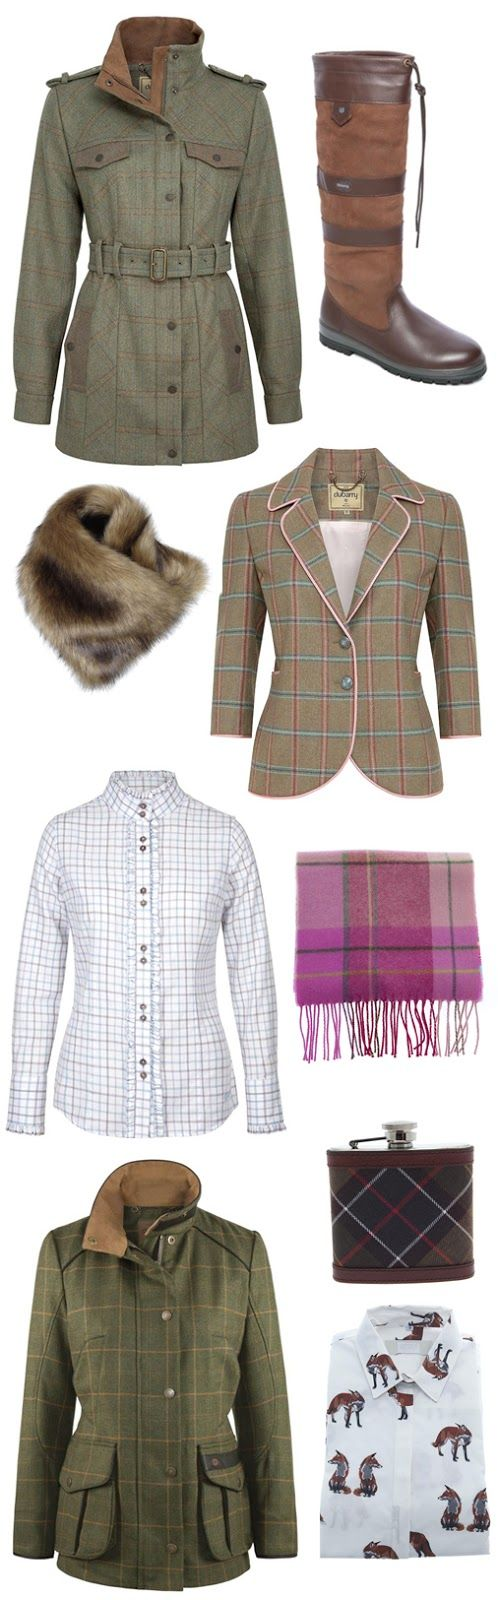 A Hume - The Country Clothing Store clothing. Find out more here: http://www.charlotteinengland.com/2015/08/a-hume-country-clothing-store.html